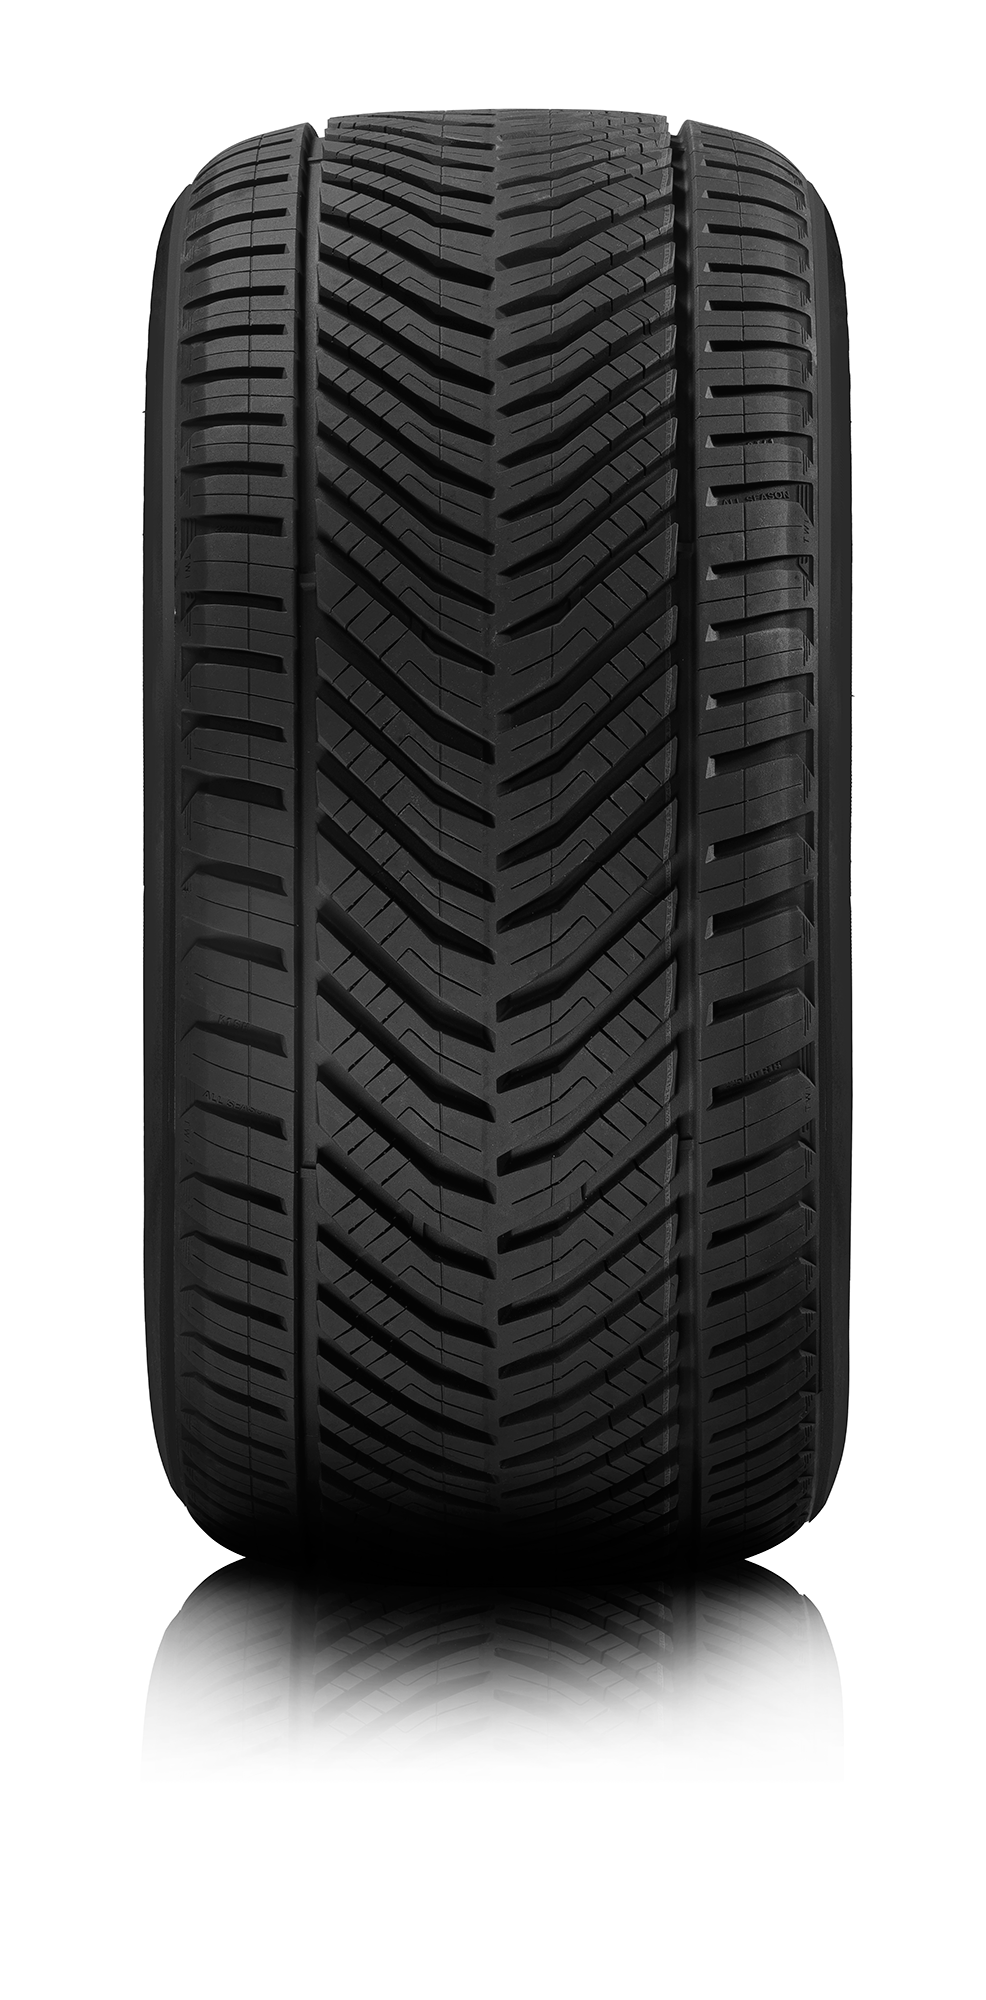 Gomme Nuove Orium 185/65 R15 92V ALL SEASON XL M+S pneumatici nuovi All Season